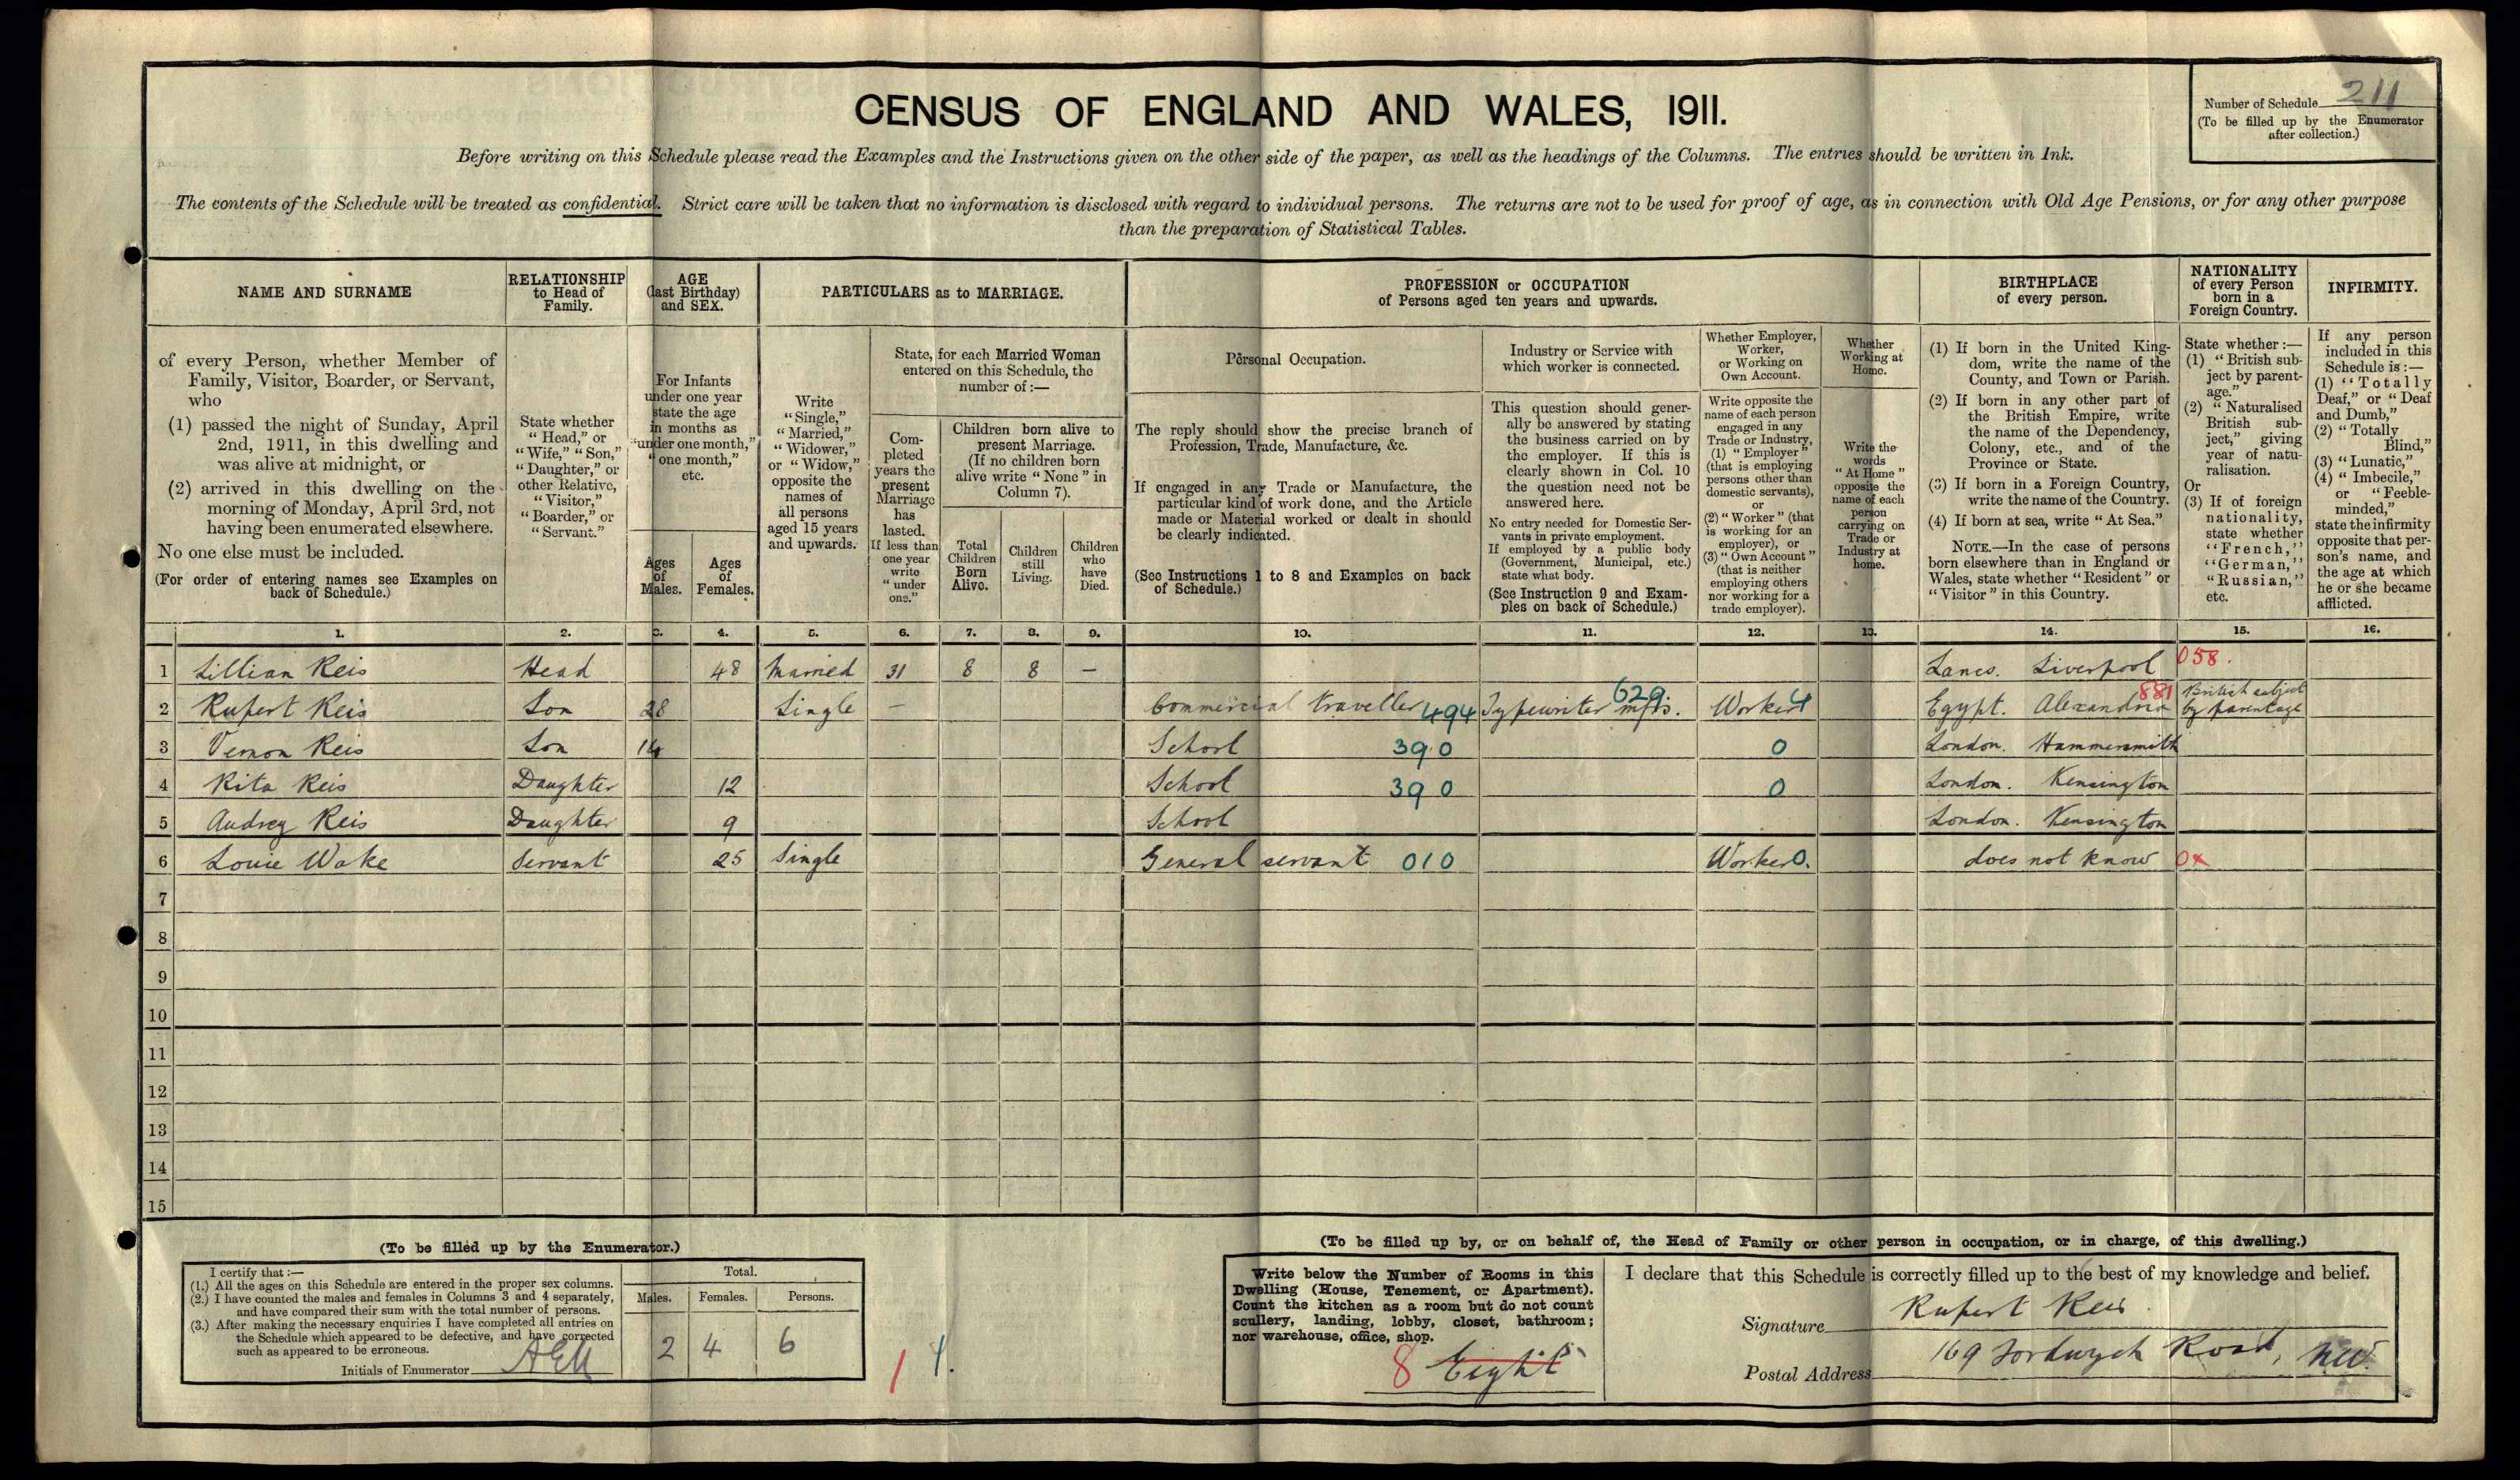 Lillian Reis on 1911 Census